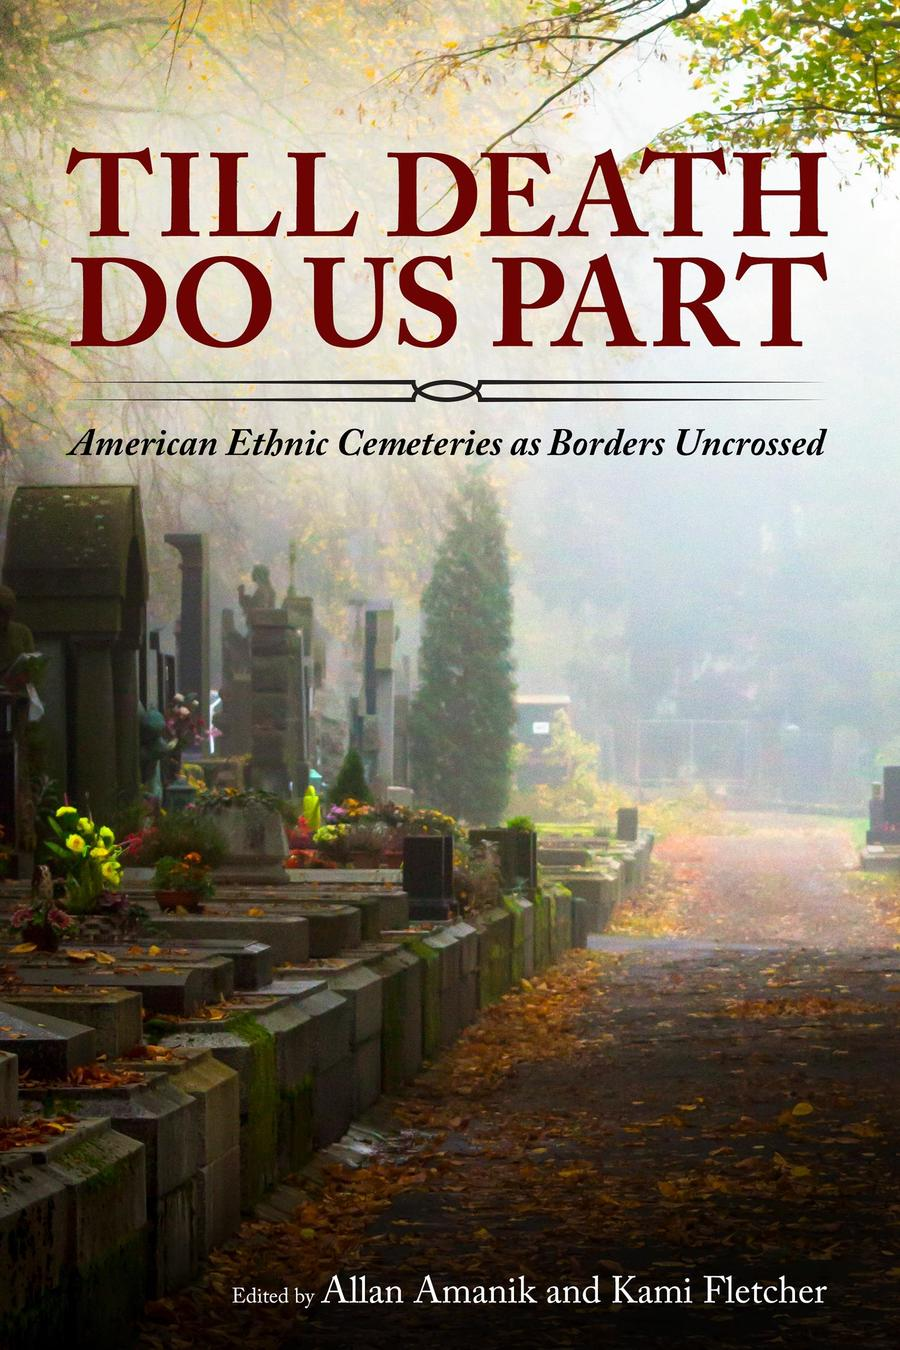 cover of Allan Amanik and Kami Fletcher, Till Death Do Us Part: American Ethnic Cemeteries as Borders Uncrossed. University Press of Mississippi, 2020.